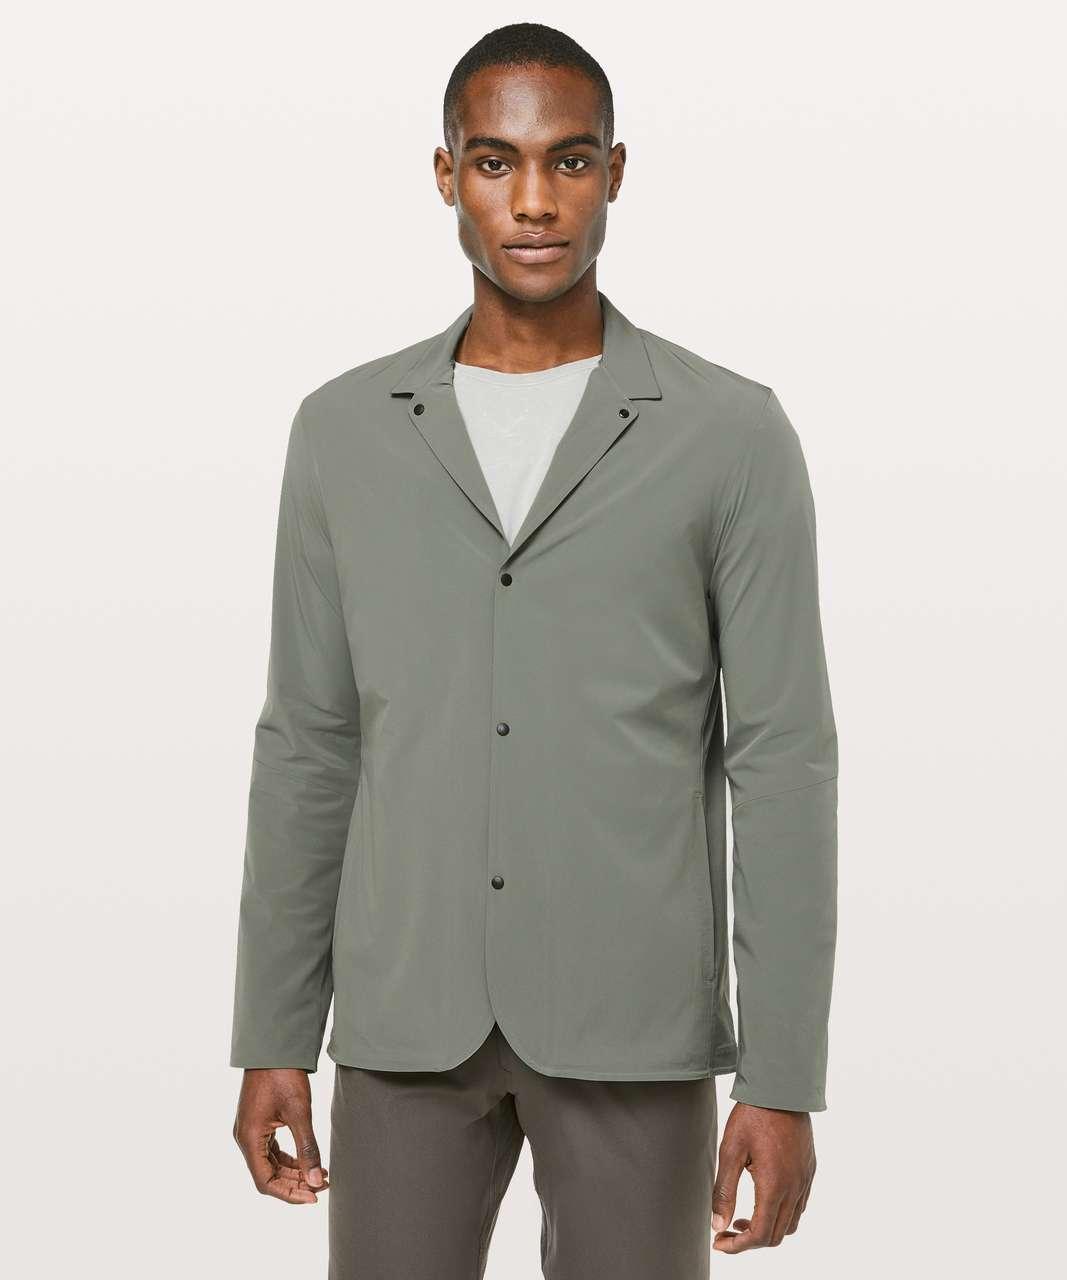 Lululemon Parkway Light Blazer - Grey Sage